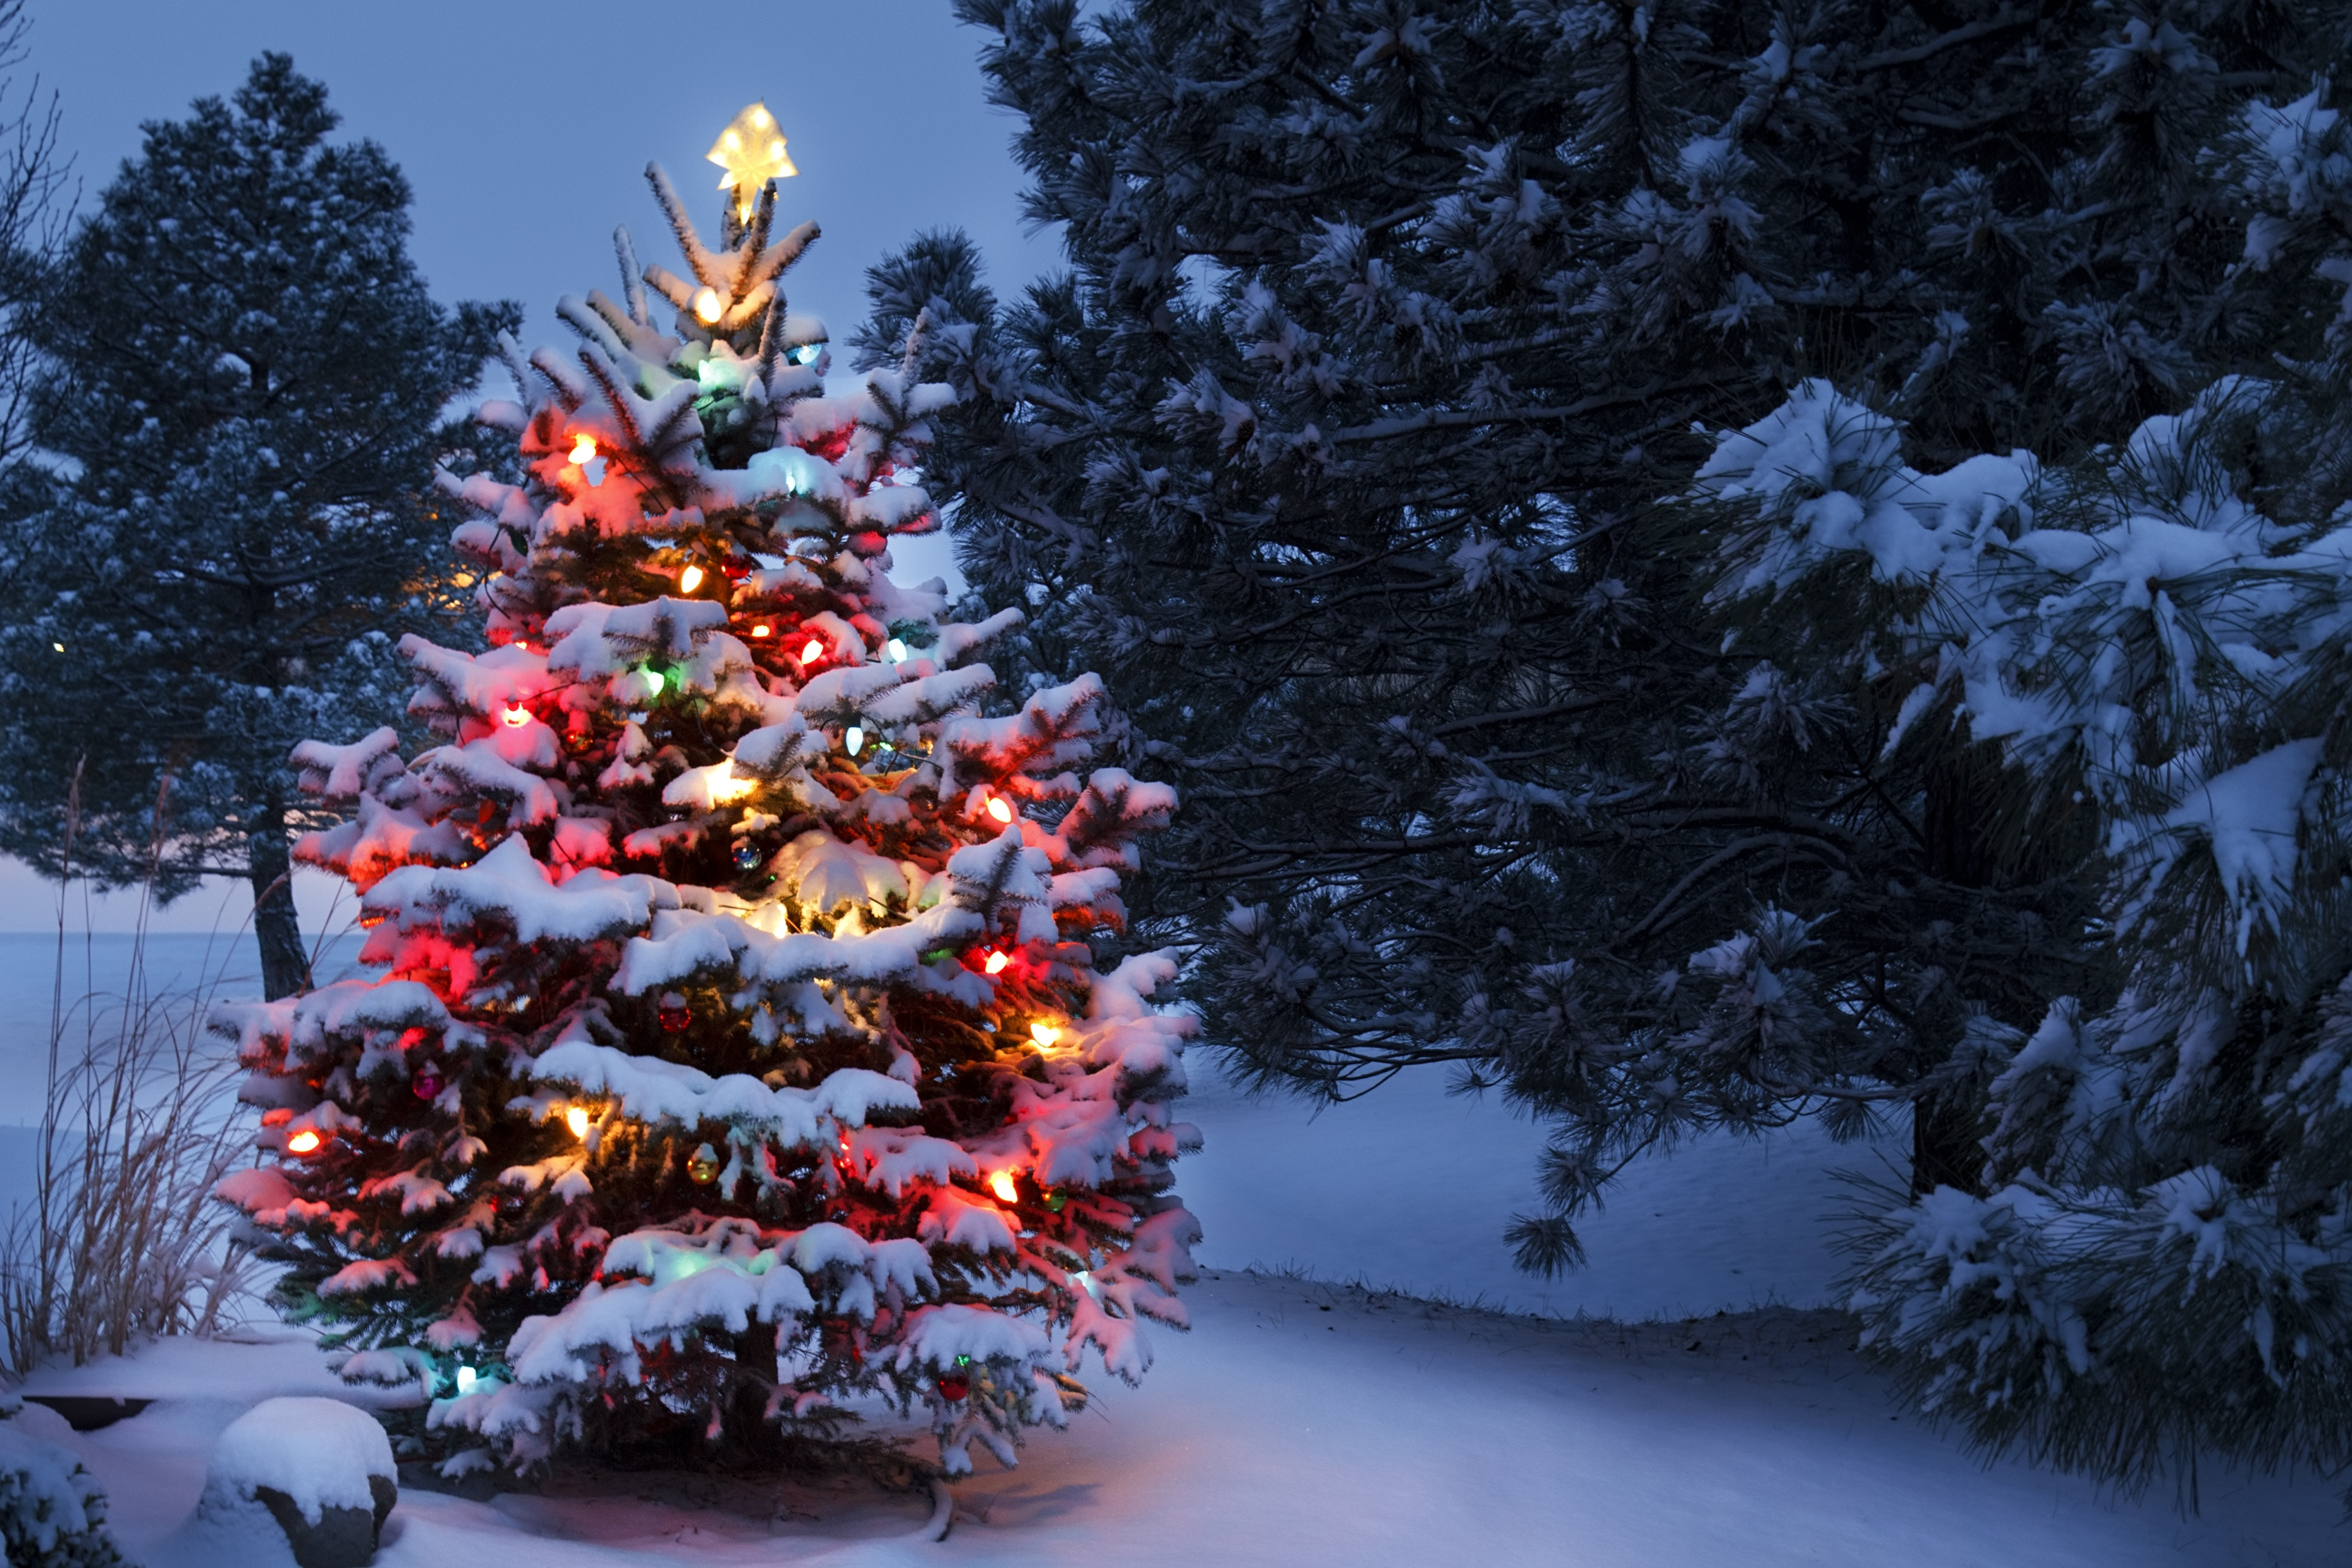 Tree Service In Sparks Md Explores Outdoor Tree Lighting Safety